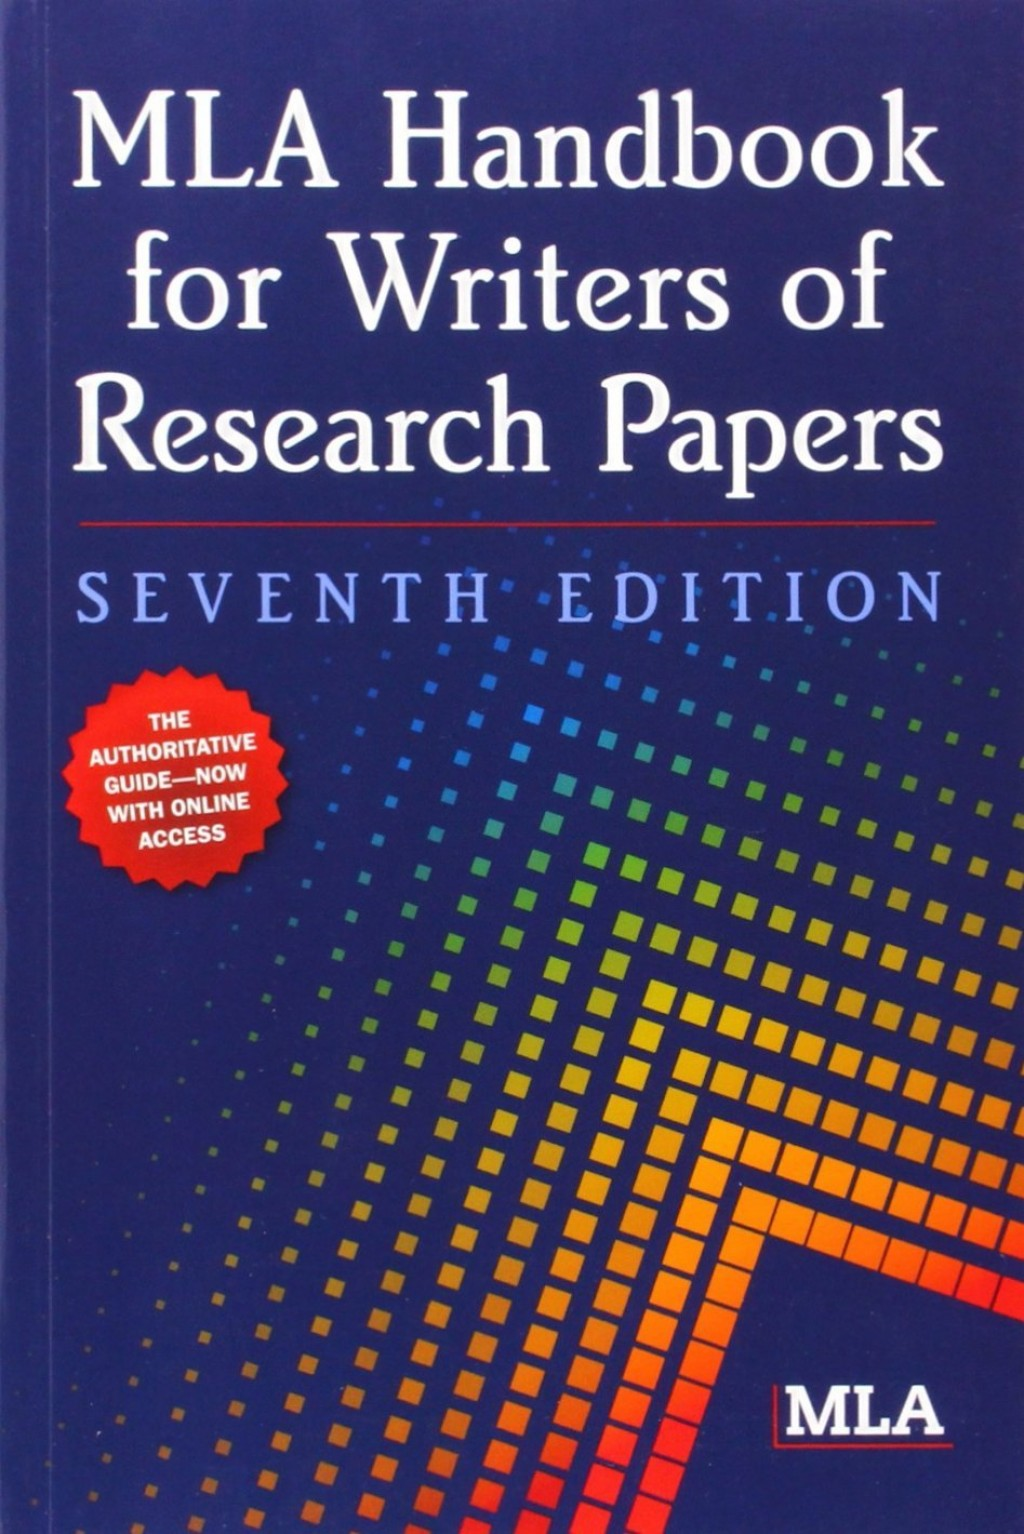 001 Research Paper According To The Mla Handbook For Writers Of Papers Unforgettable 8th Edition Pdf 7th 2009 Large